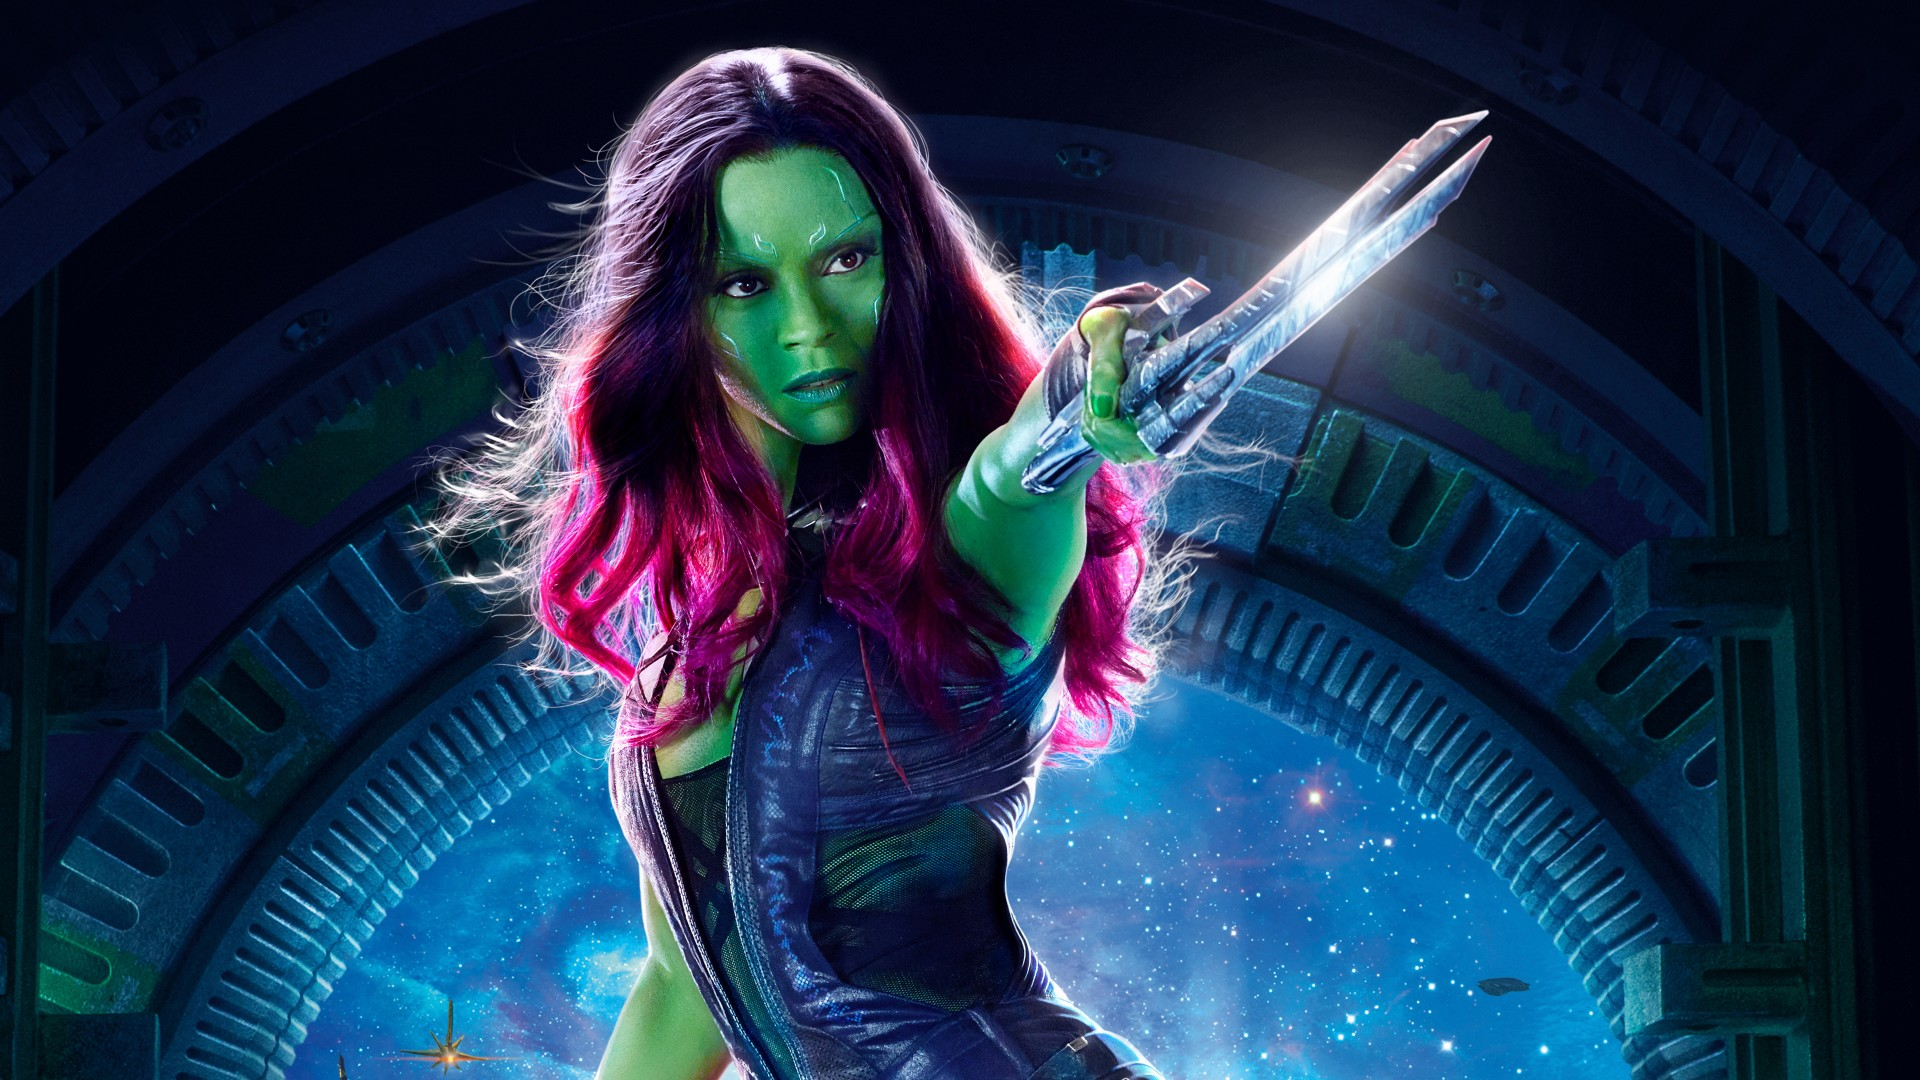 Wallpaper Superhero Marvel 3d Gamora Guardians Of The Galaxy Vol 2 4k Hd Wallpapers Hd